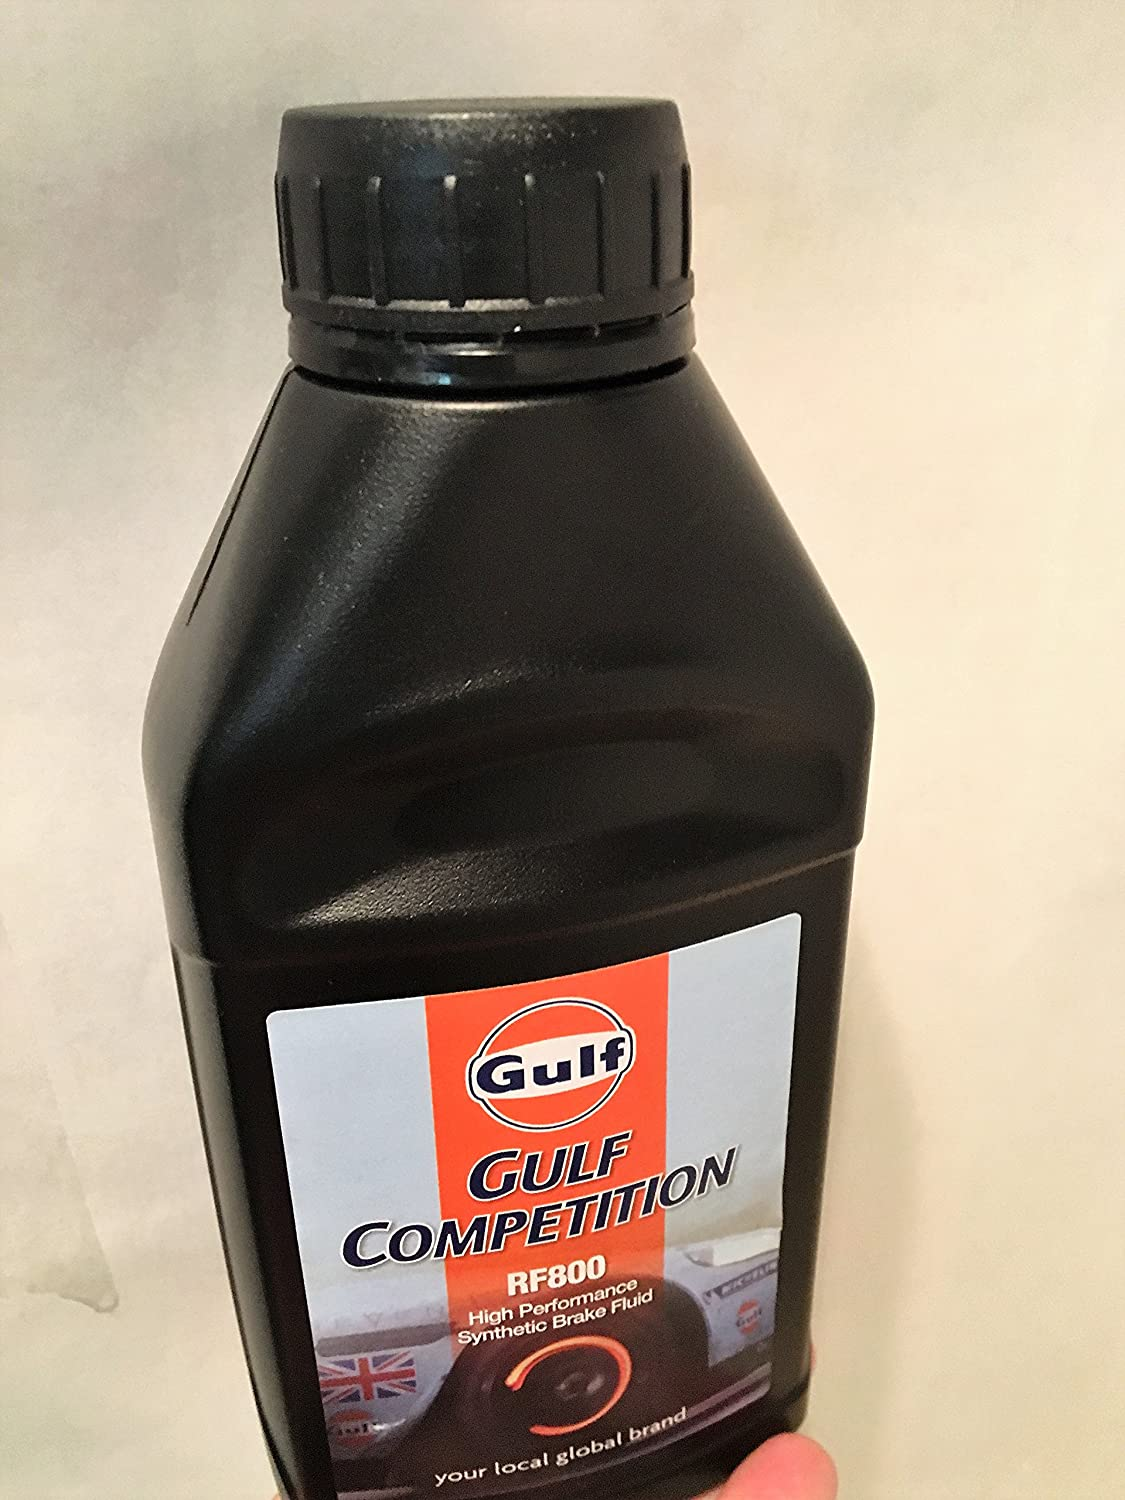 Gulf Competition RF800 High Performance Synthetic Brake Fluid 500ml